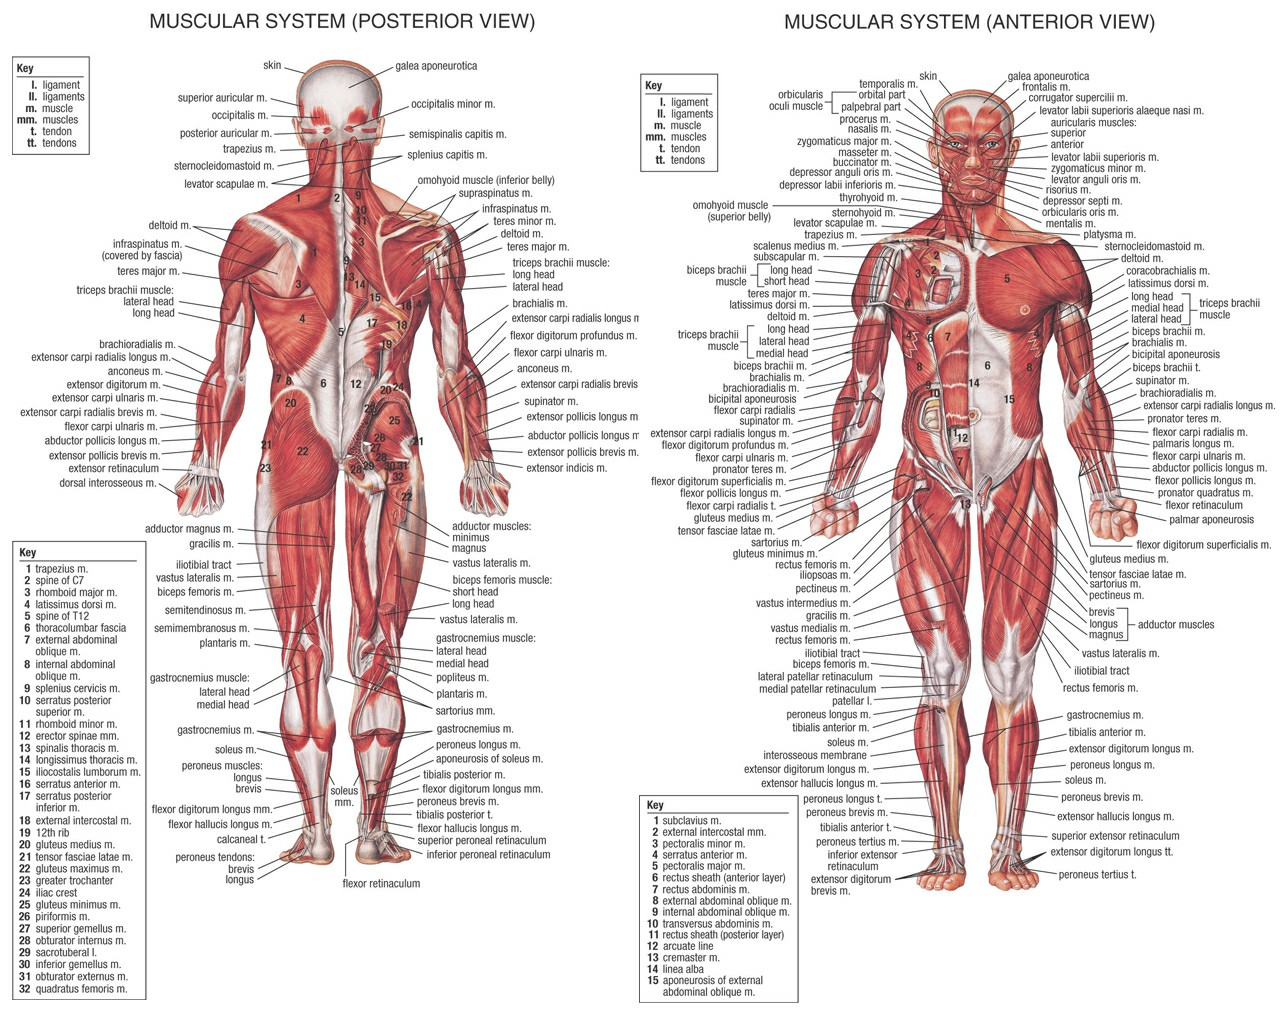 Muscles Of Human Body Diagram Human Anatomy Muscles | Kool.tk